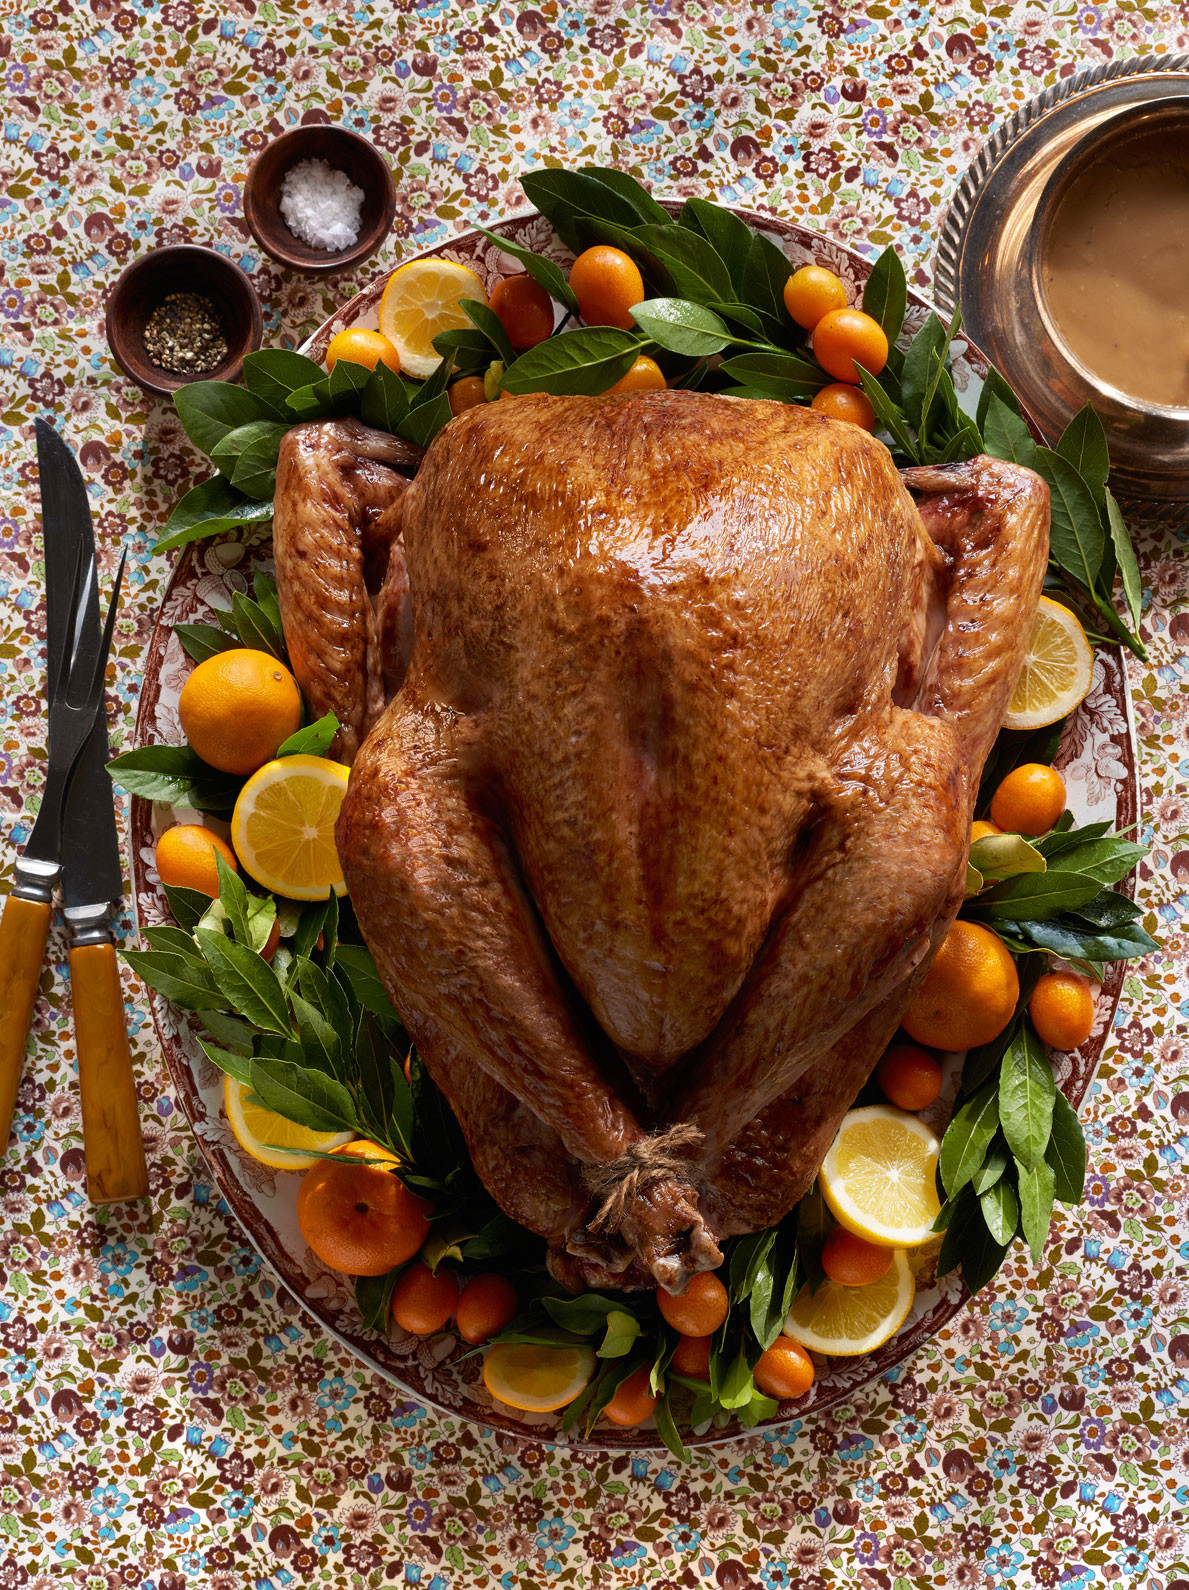 Turkey Picture For Thanksgiving  25 Best Thanksgiving Turkey Recipes How To Cook Turkey